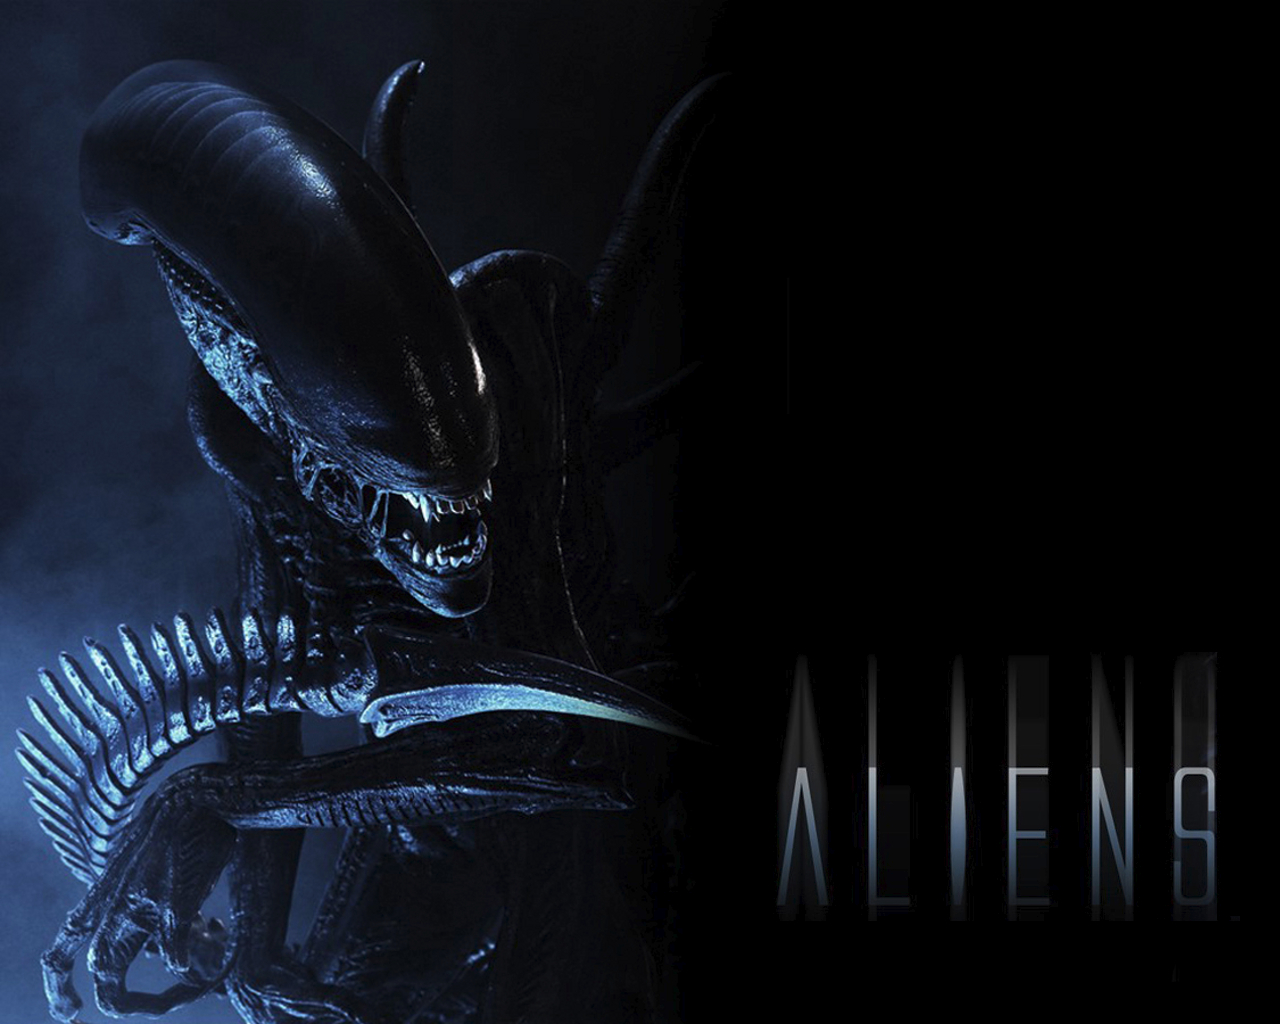 Download Xenomorph Aliens Wallpaper 1280x1024 Wallpoper 1280x1024